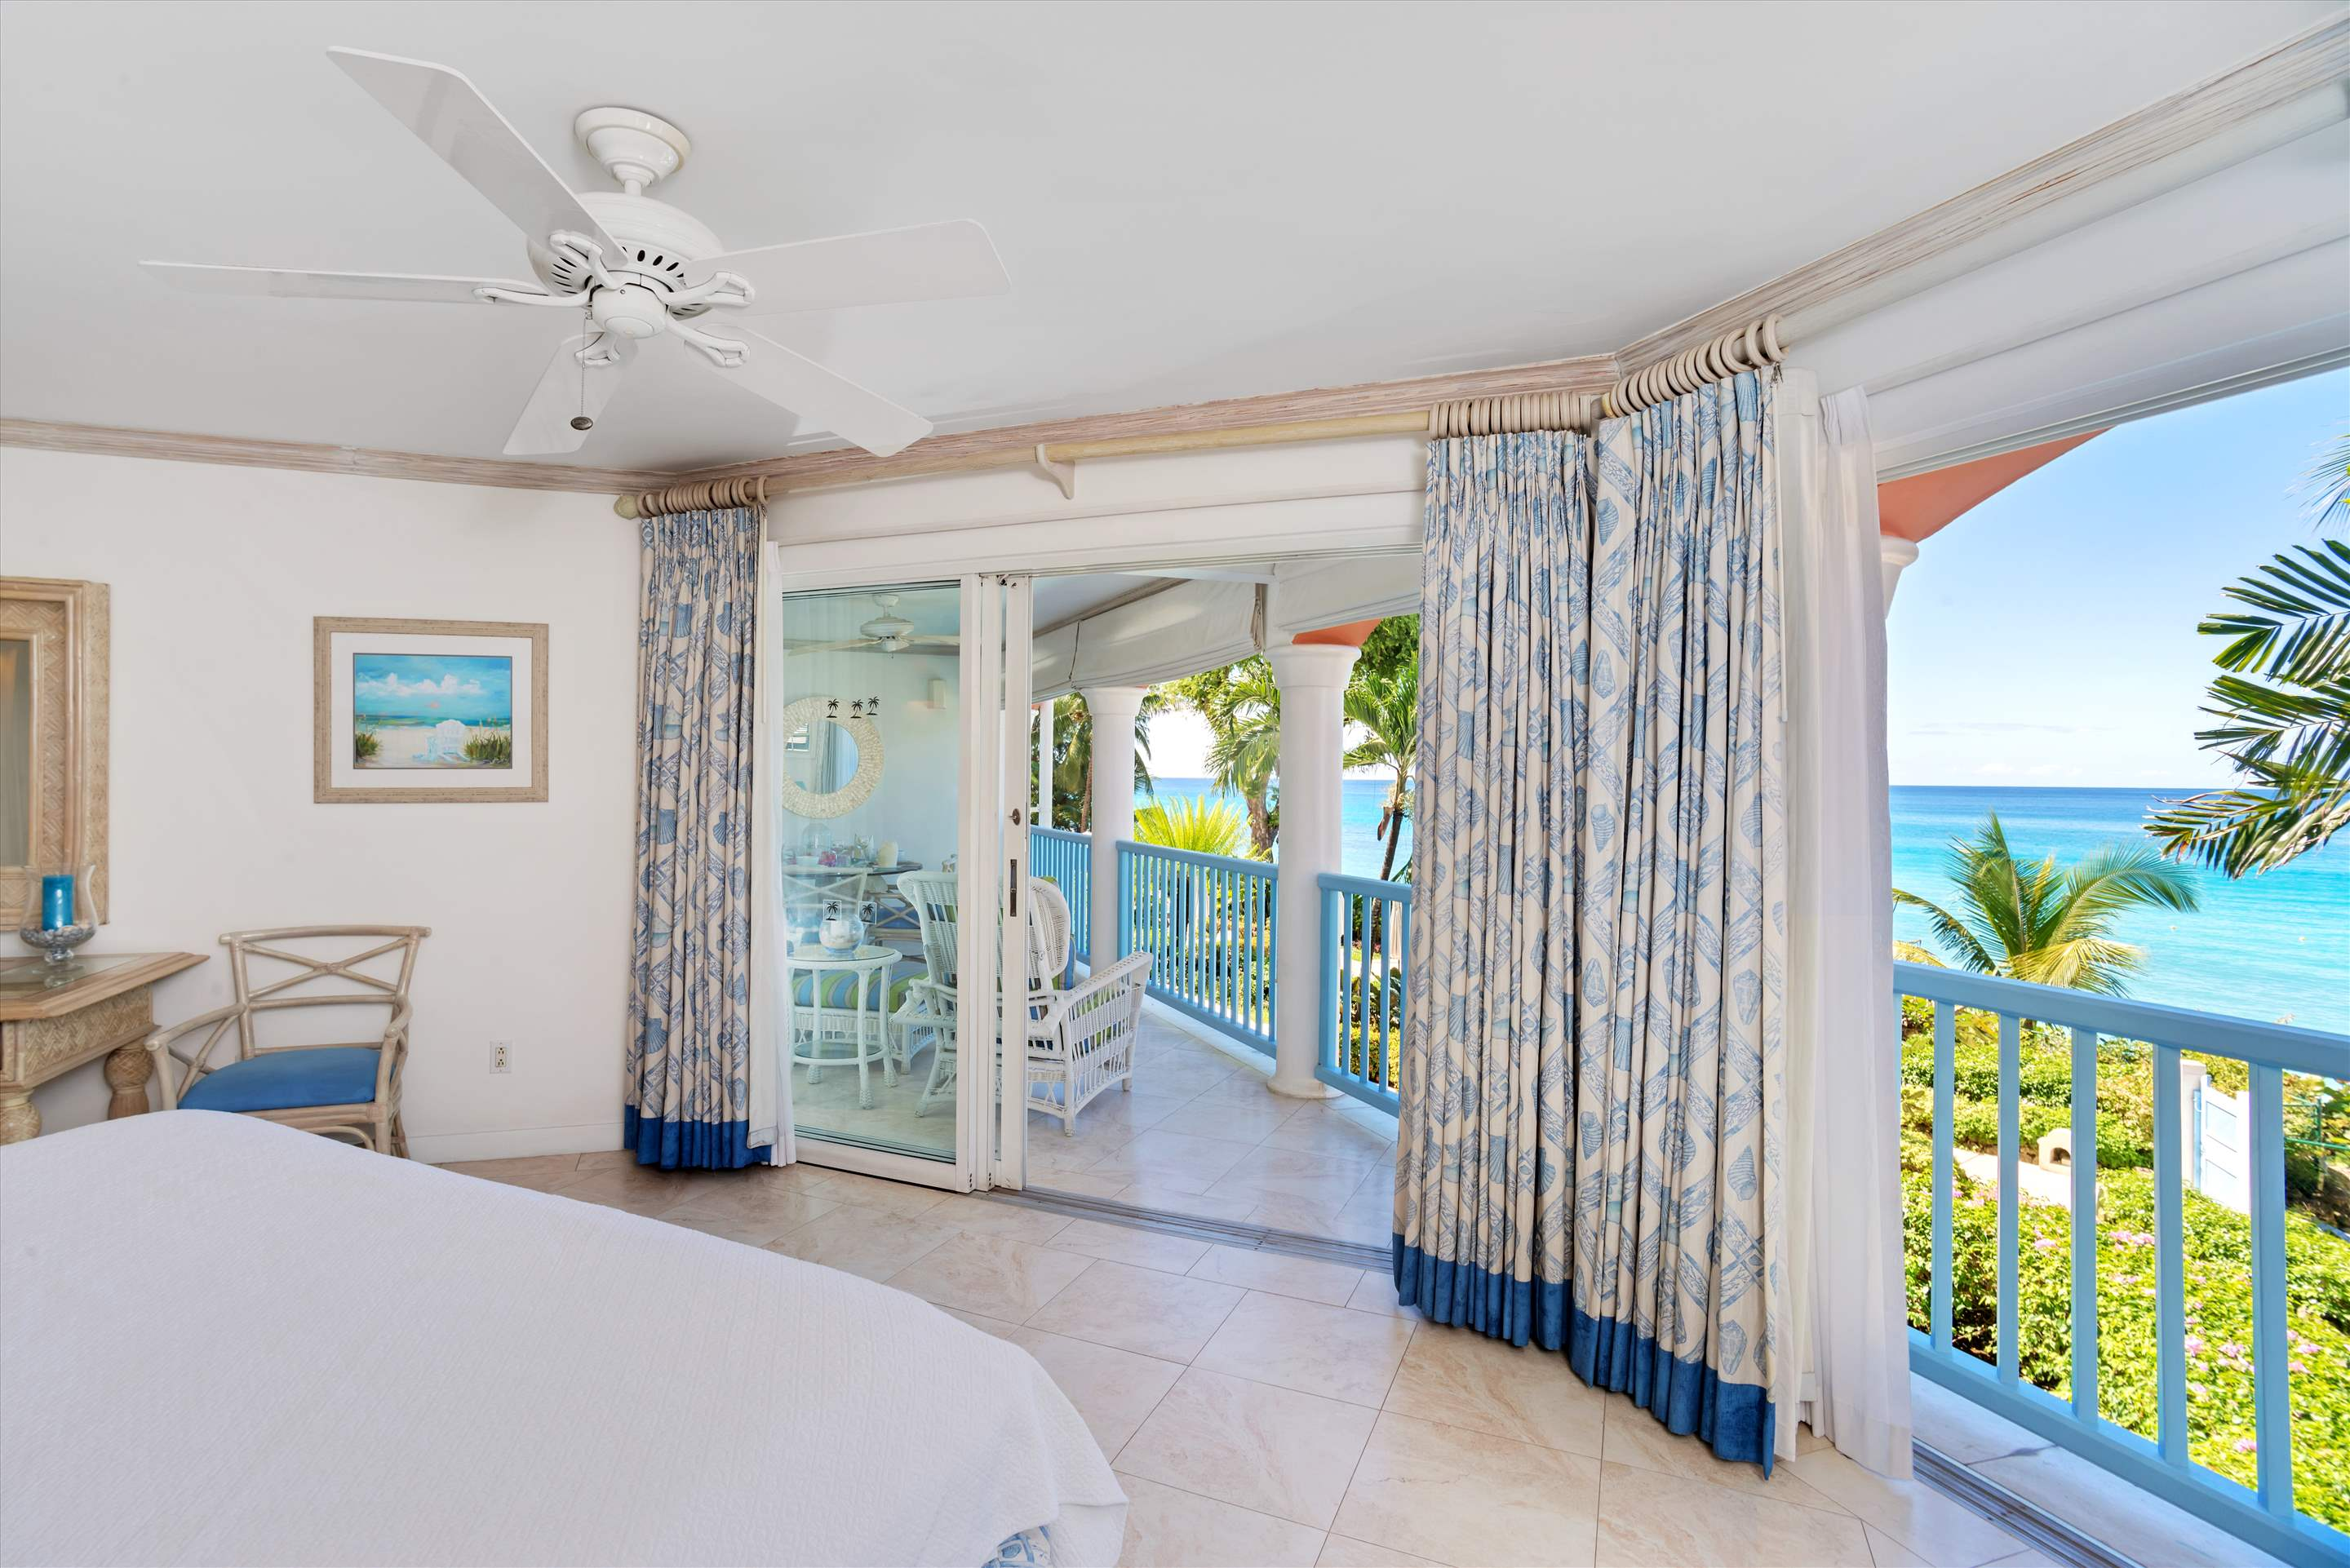 Villas on the Beach 205, 1 bedroom, 1 bedroom apartment in St. James & West Coast, Barbados Photo #9